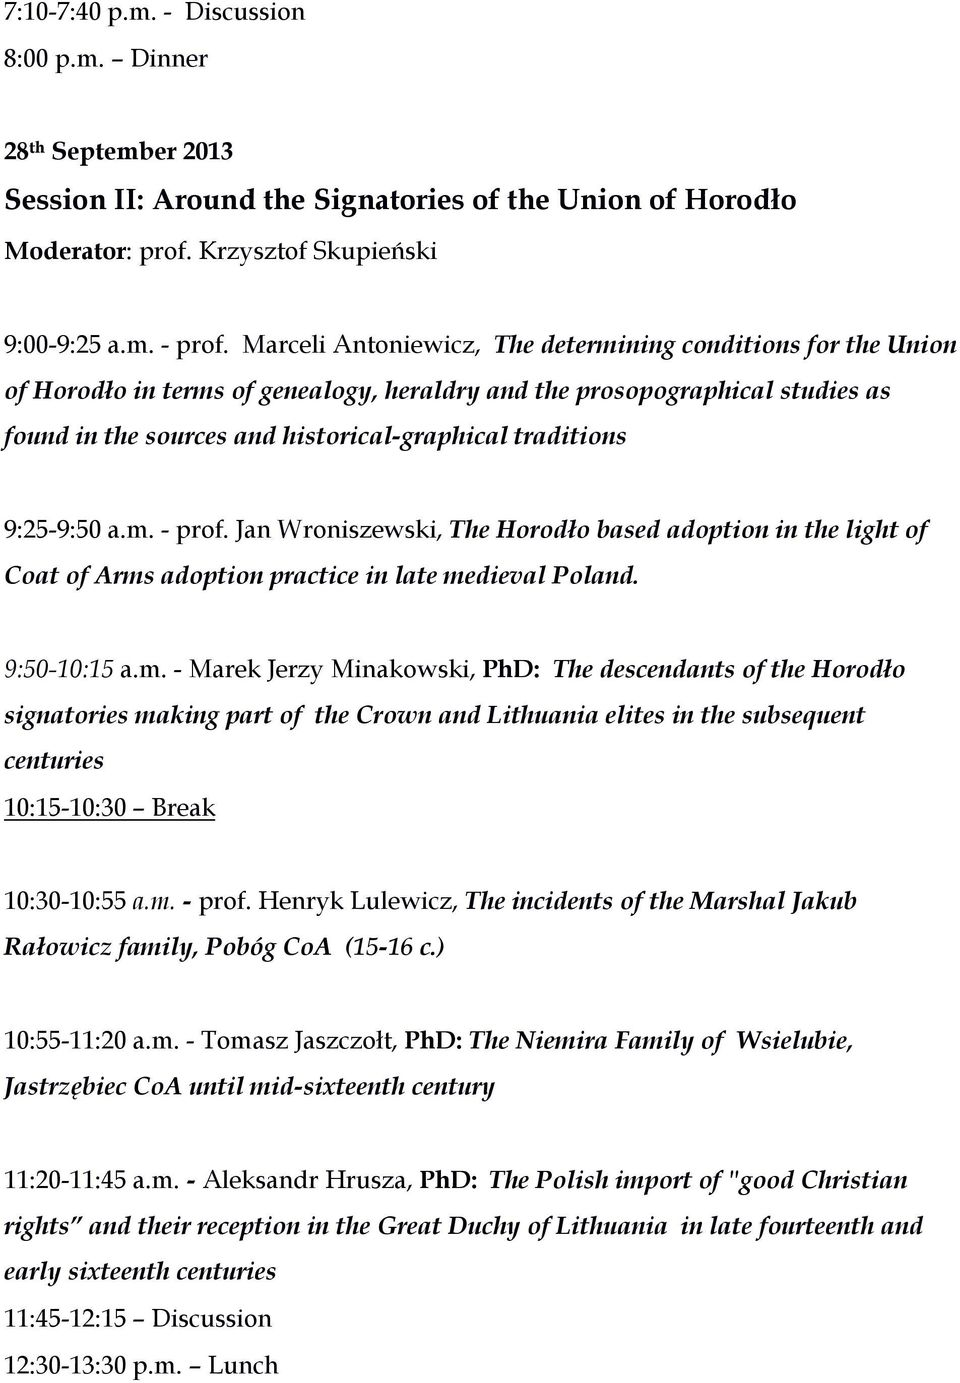 9:25-9:50 a.m. - prof. Jan Wroniszewski, The Horodło based adoption in the light of Coat of Arms adoption practice in late medieval Poland. 9:50-10:15 a.m. - Marek Jerzy Minakowski, PhD: The descendants of the Horodło signatories making part of the Crown and Lithuania elites in the subsequent centuries 10:15-10:30 Break 10:30-10:55 a.